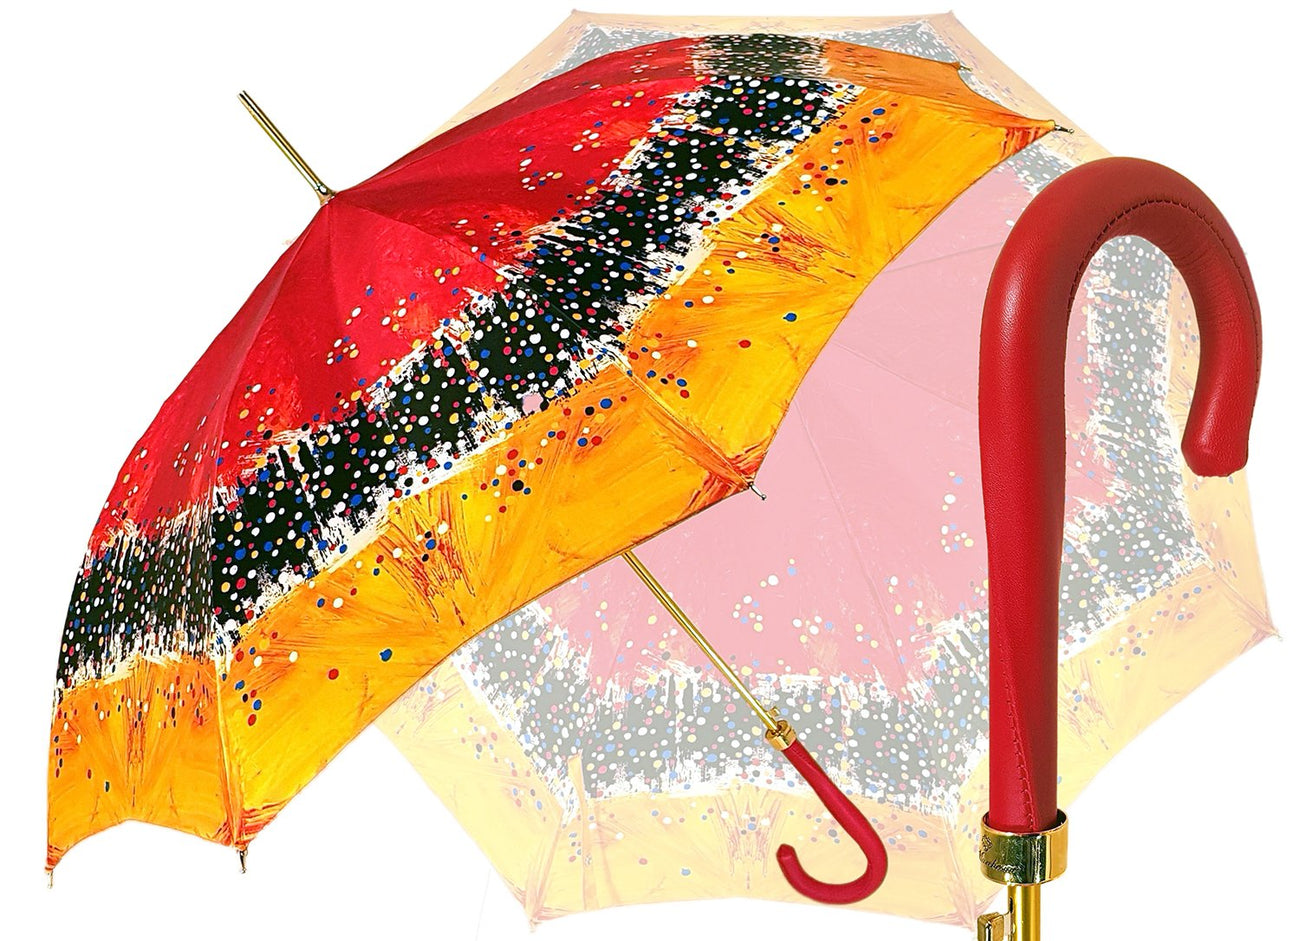 AWESOME LUXURY UMBRELLA PAINTING COLORED MARCHESATO